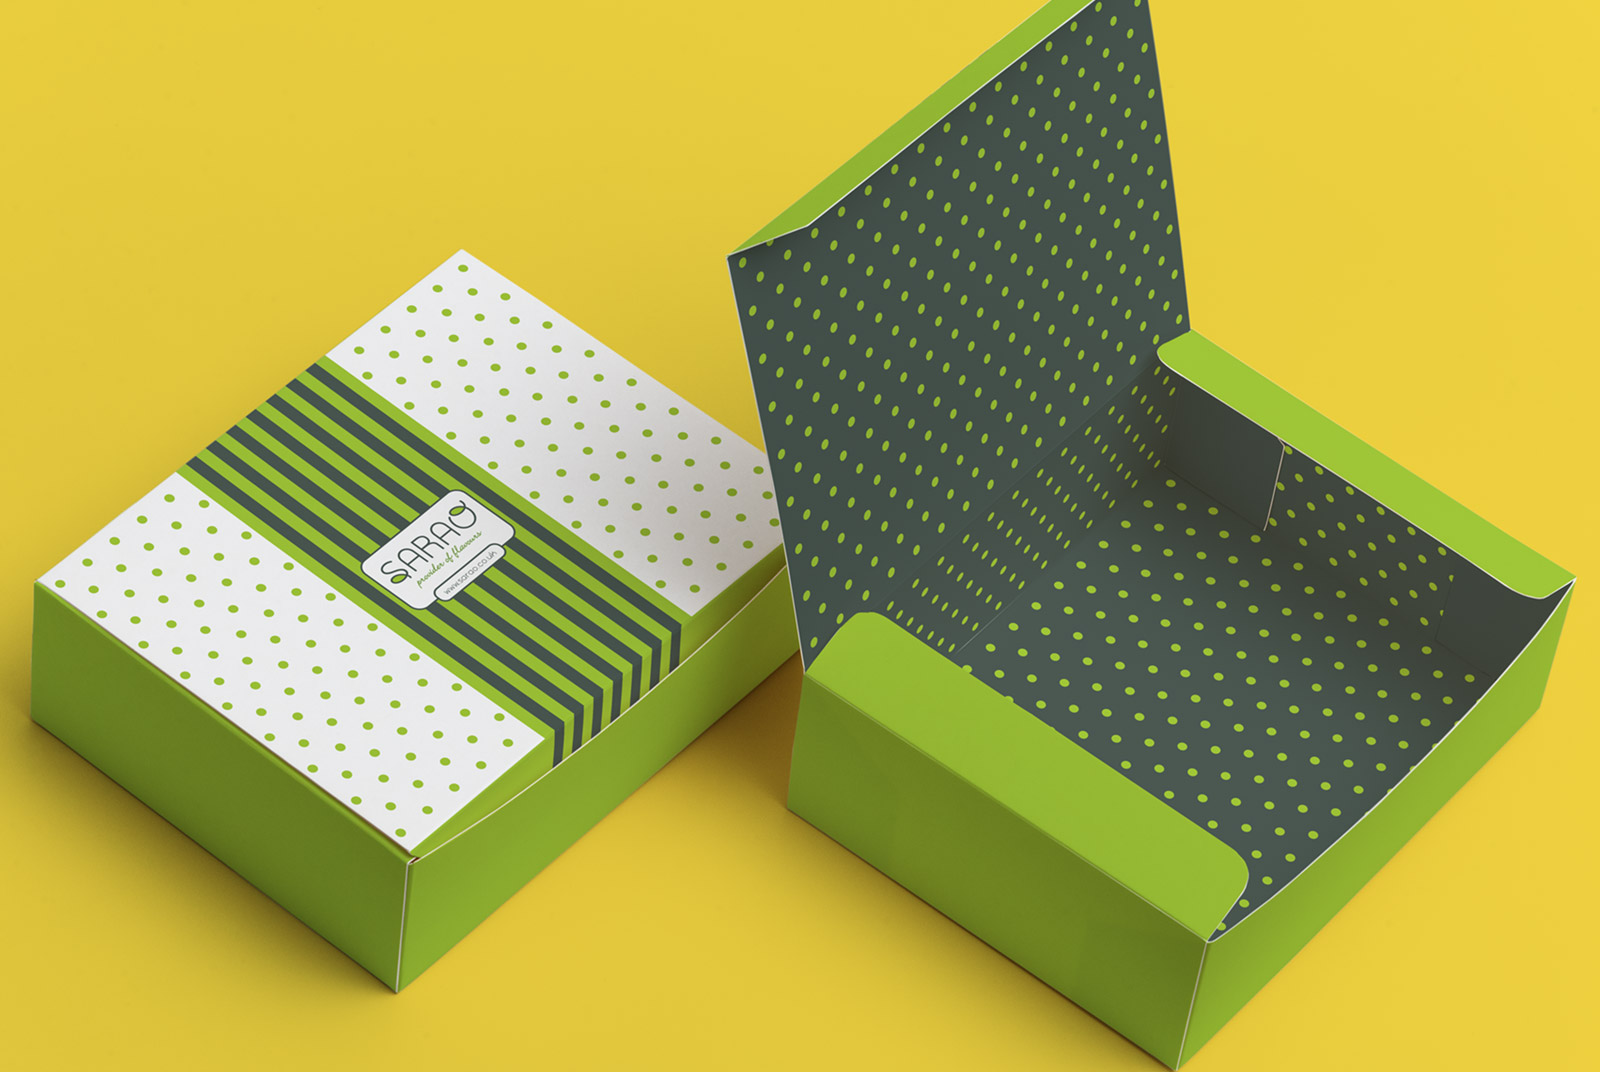 Packaging SaraO